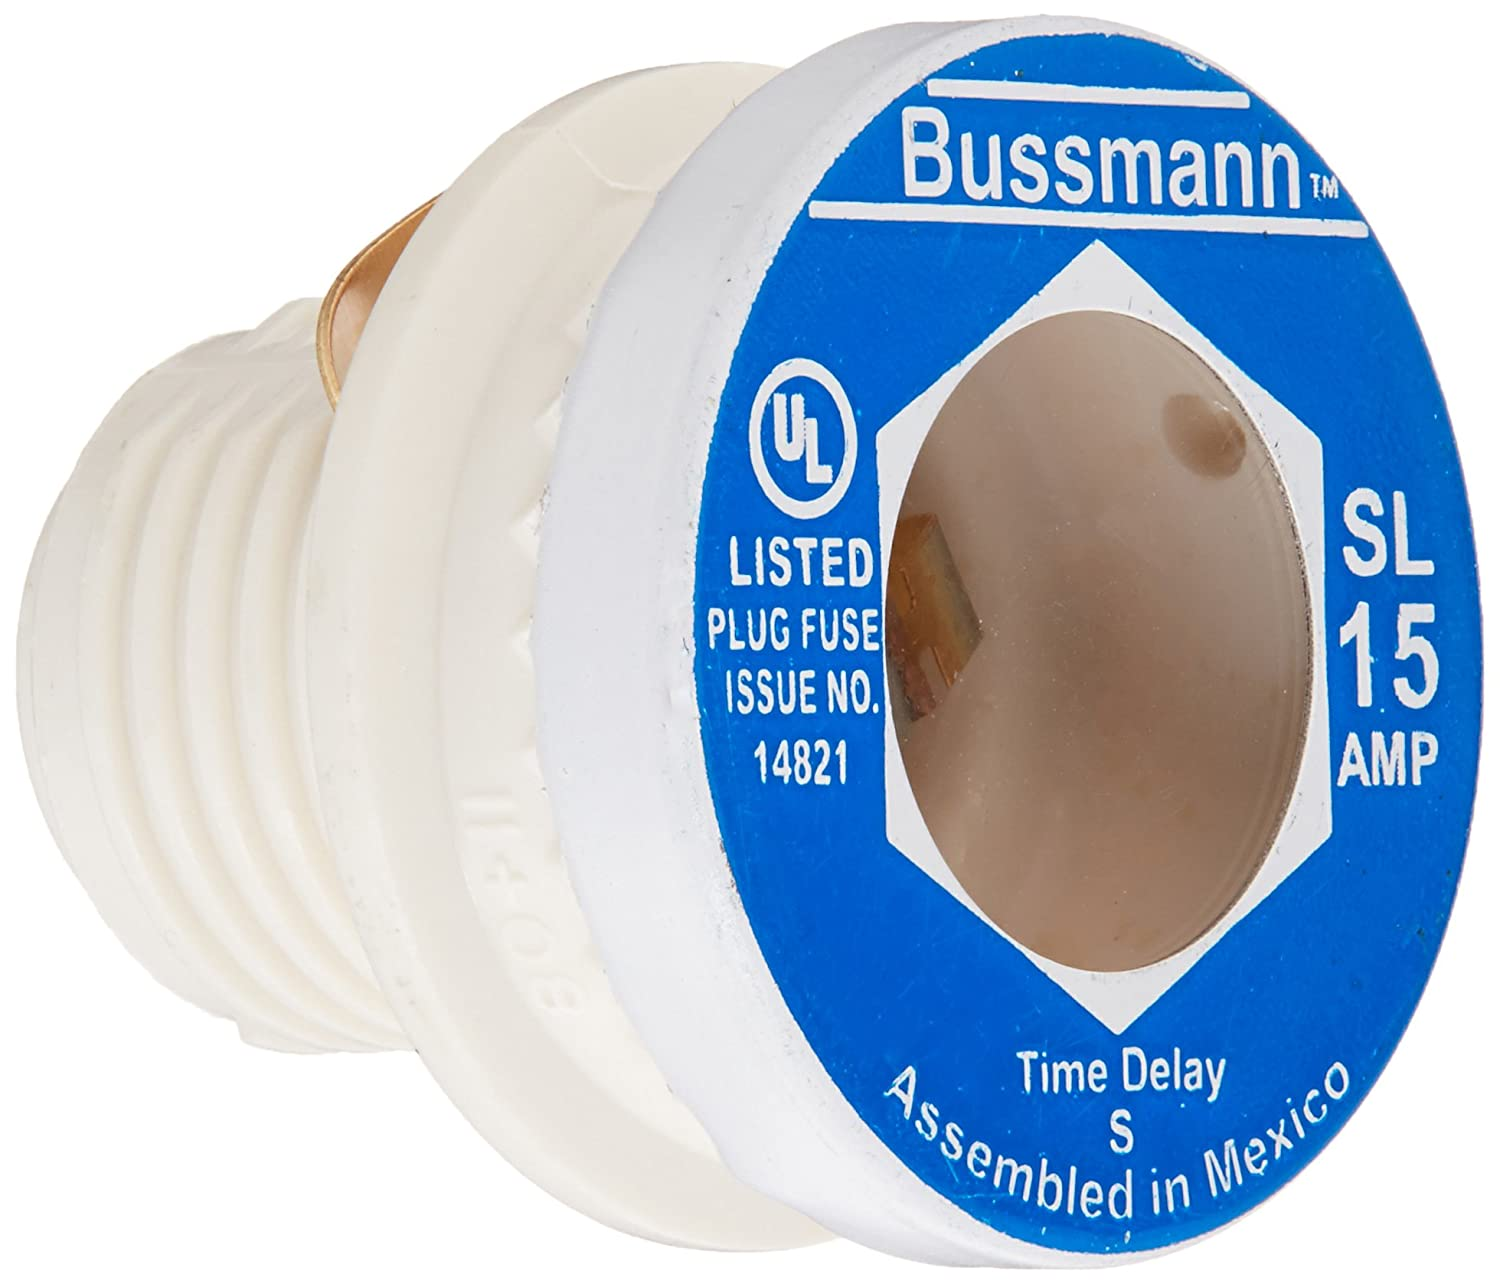 71HjnNmm pL._SL1500_ bussmann bp sl 15 15 amp time delay loaded link rejection base time delay fuse block at reclaimingppi.co